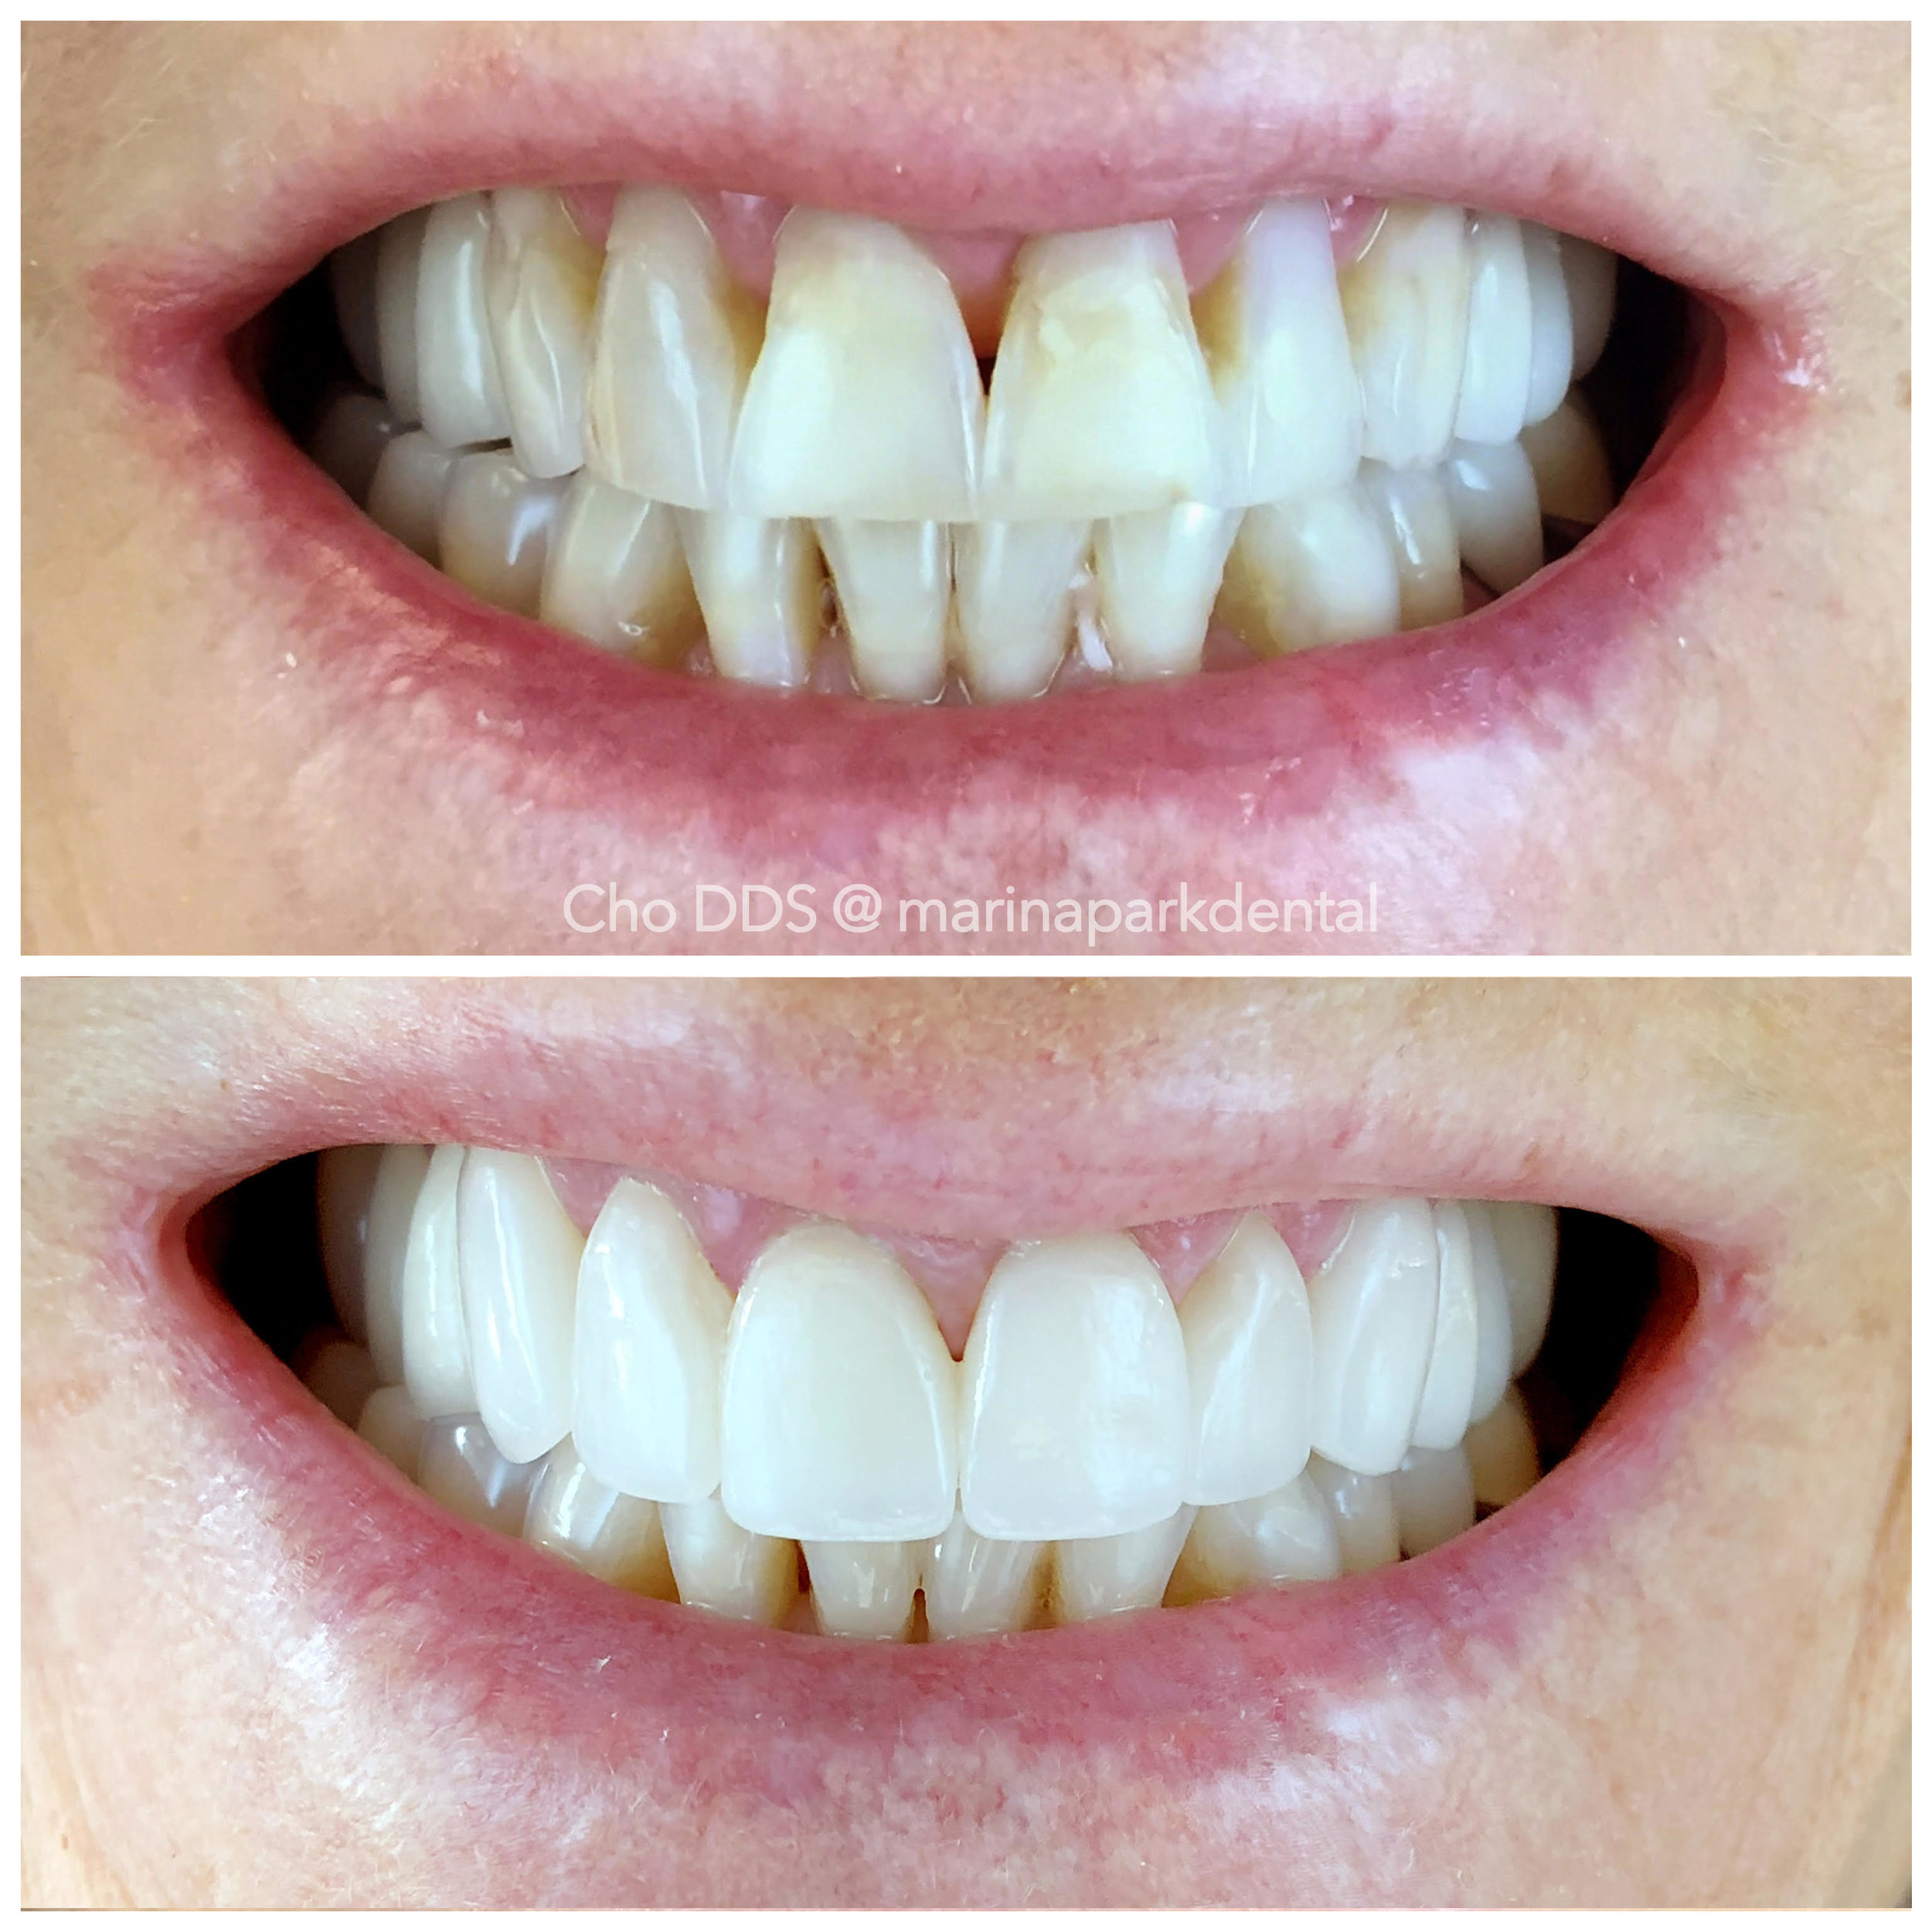 Esthetic Veneers - Six unit of veneers helped to enhance this patient's smile by selecting a lighter shade of porcelain, shaping the crowns rounder to fill in voids where gum had receded. The combination of these elements gave the patient a more youthful and feminine look.